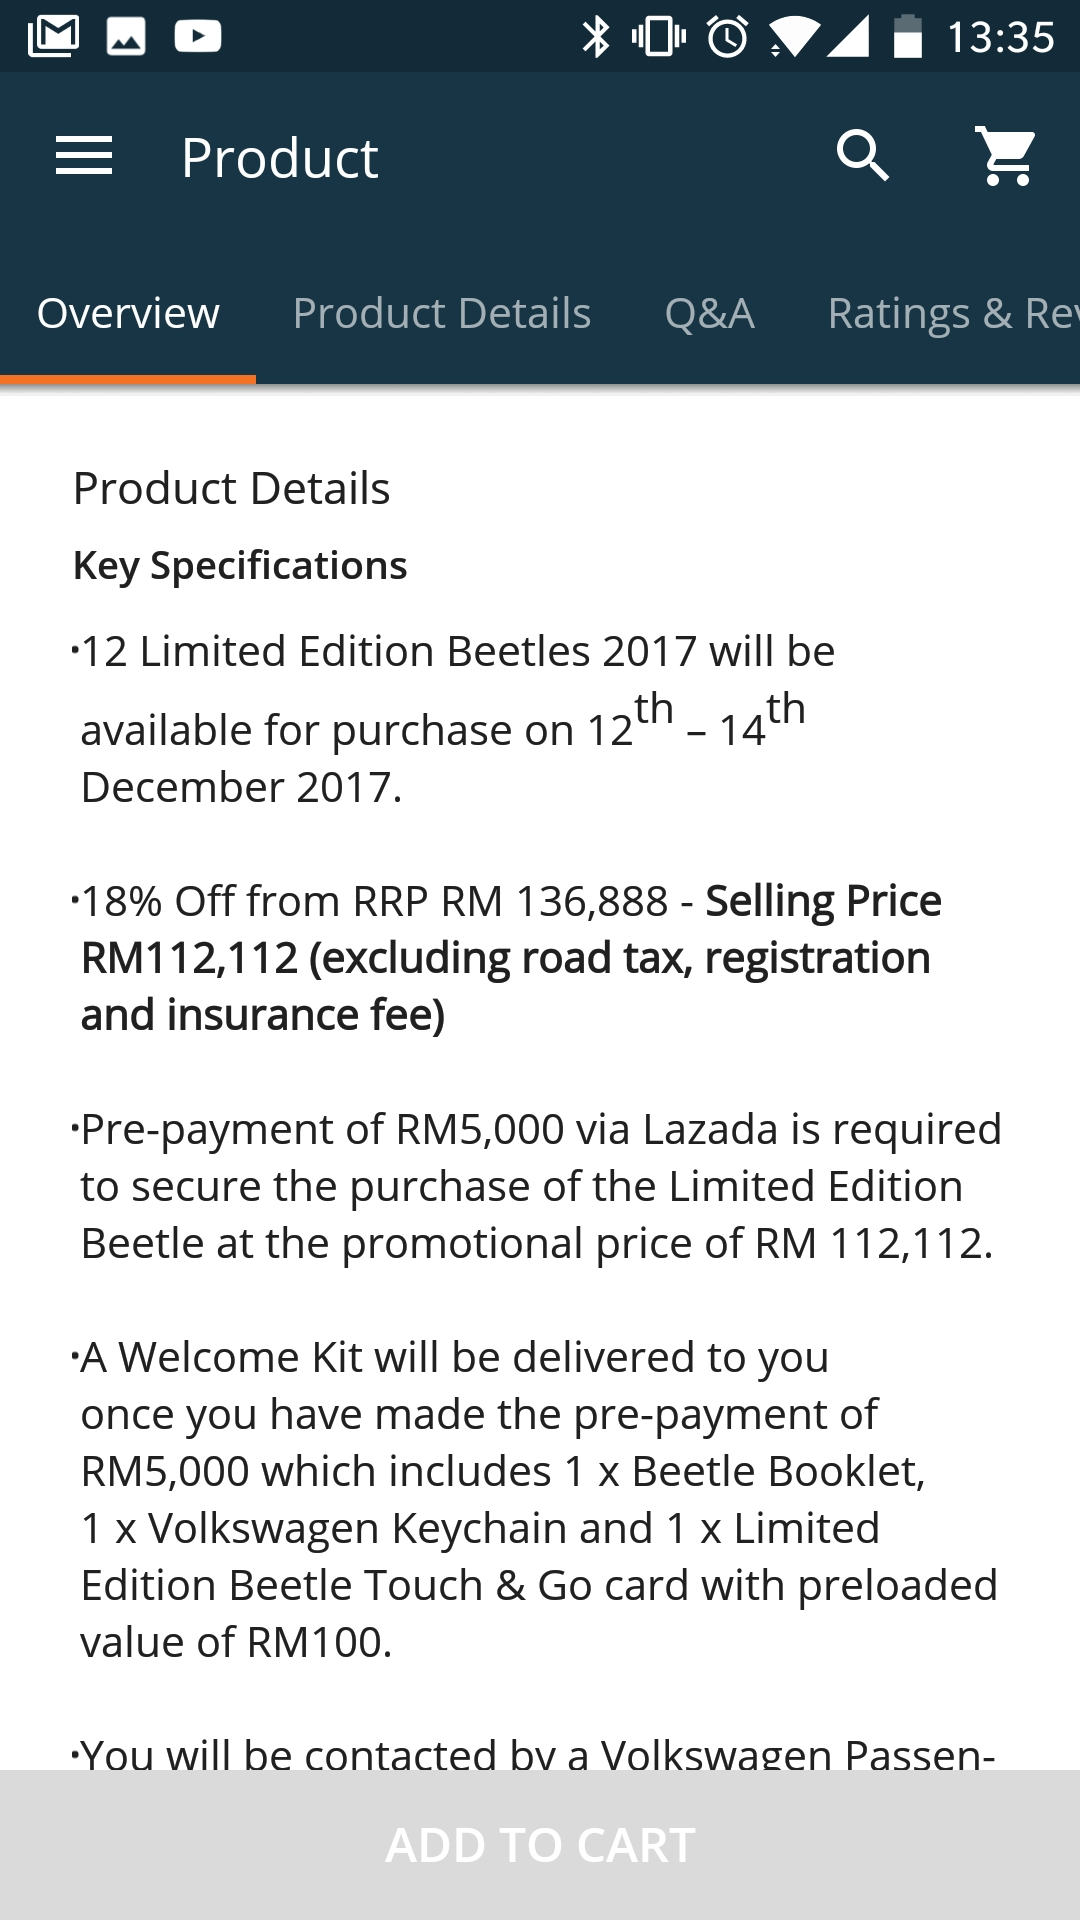 You can now buy Volkswagen cars on Lazada 4